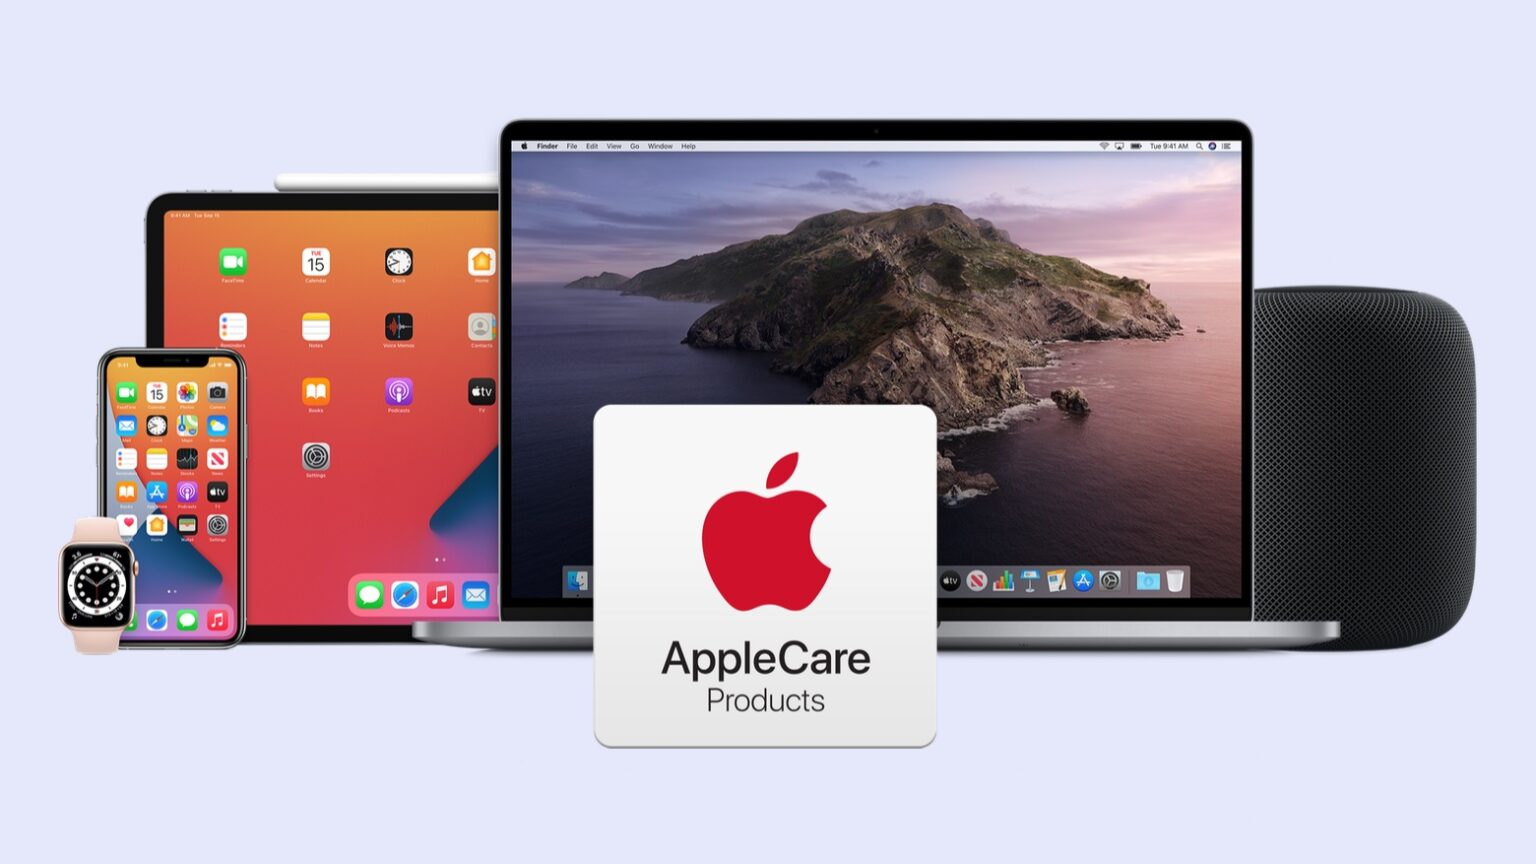 AppleCare provides extended insurance for so many Apple products.